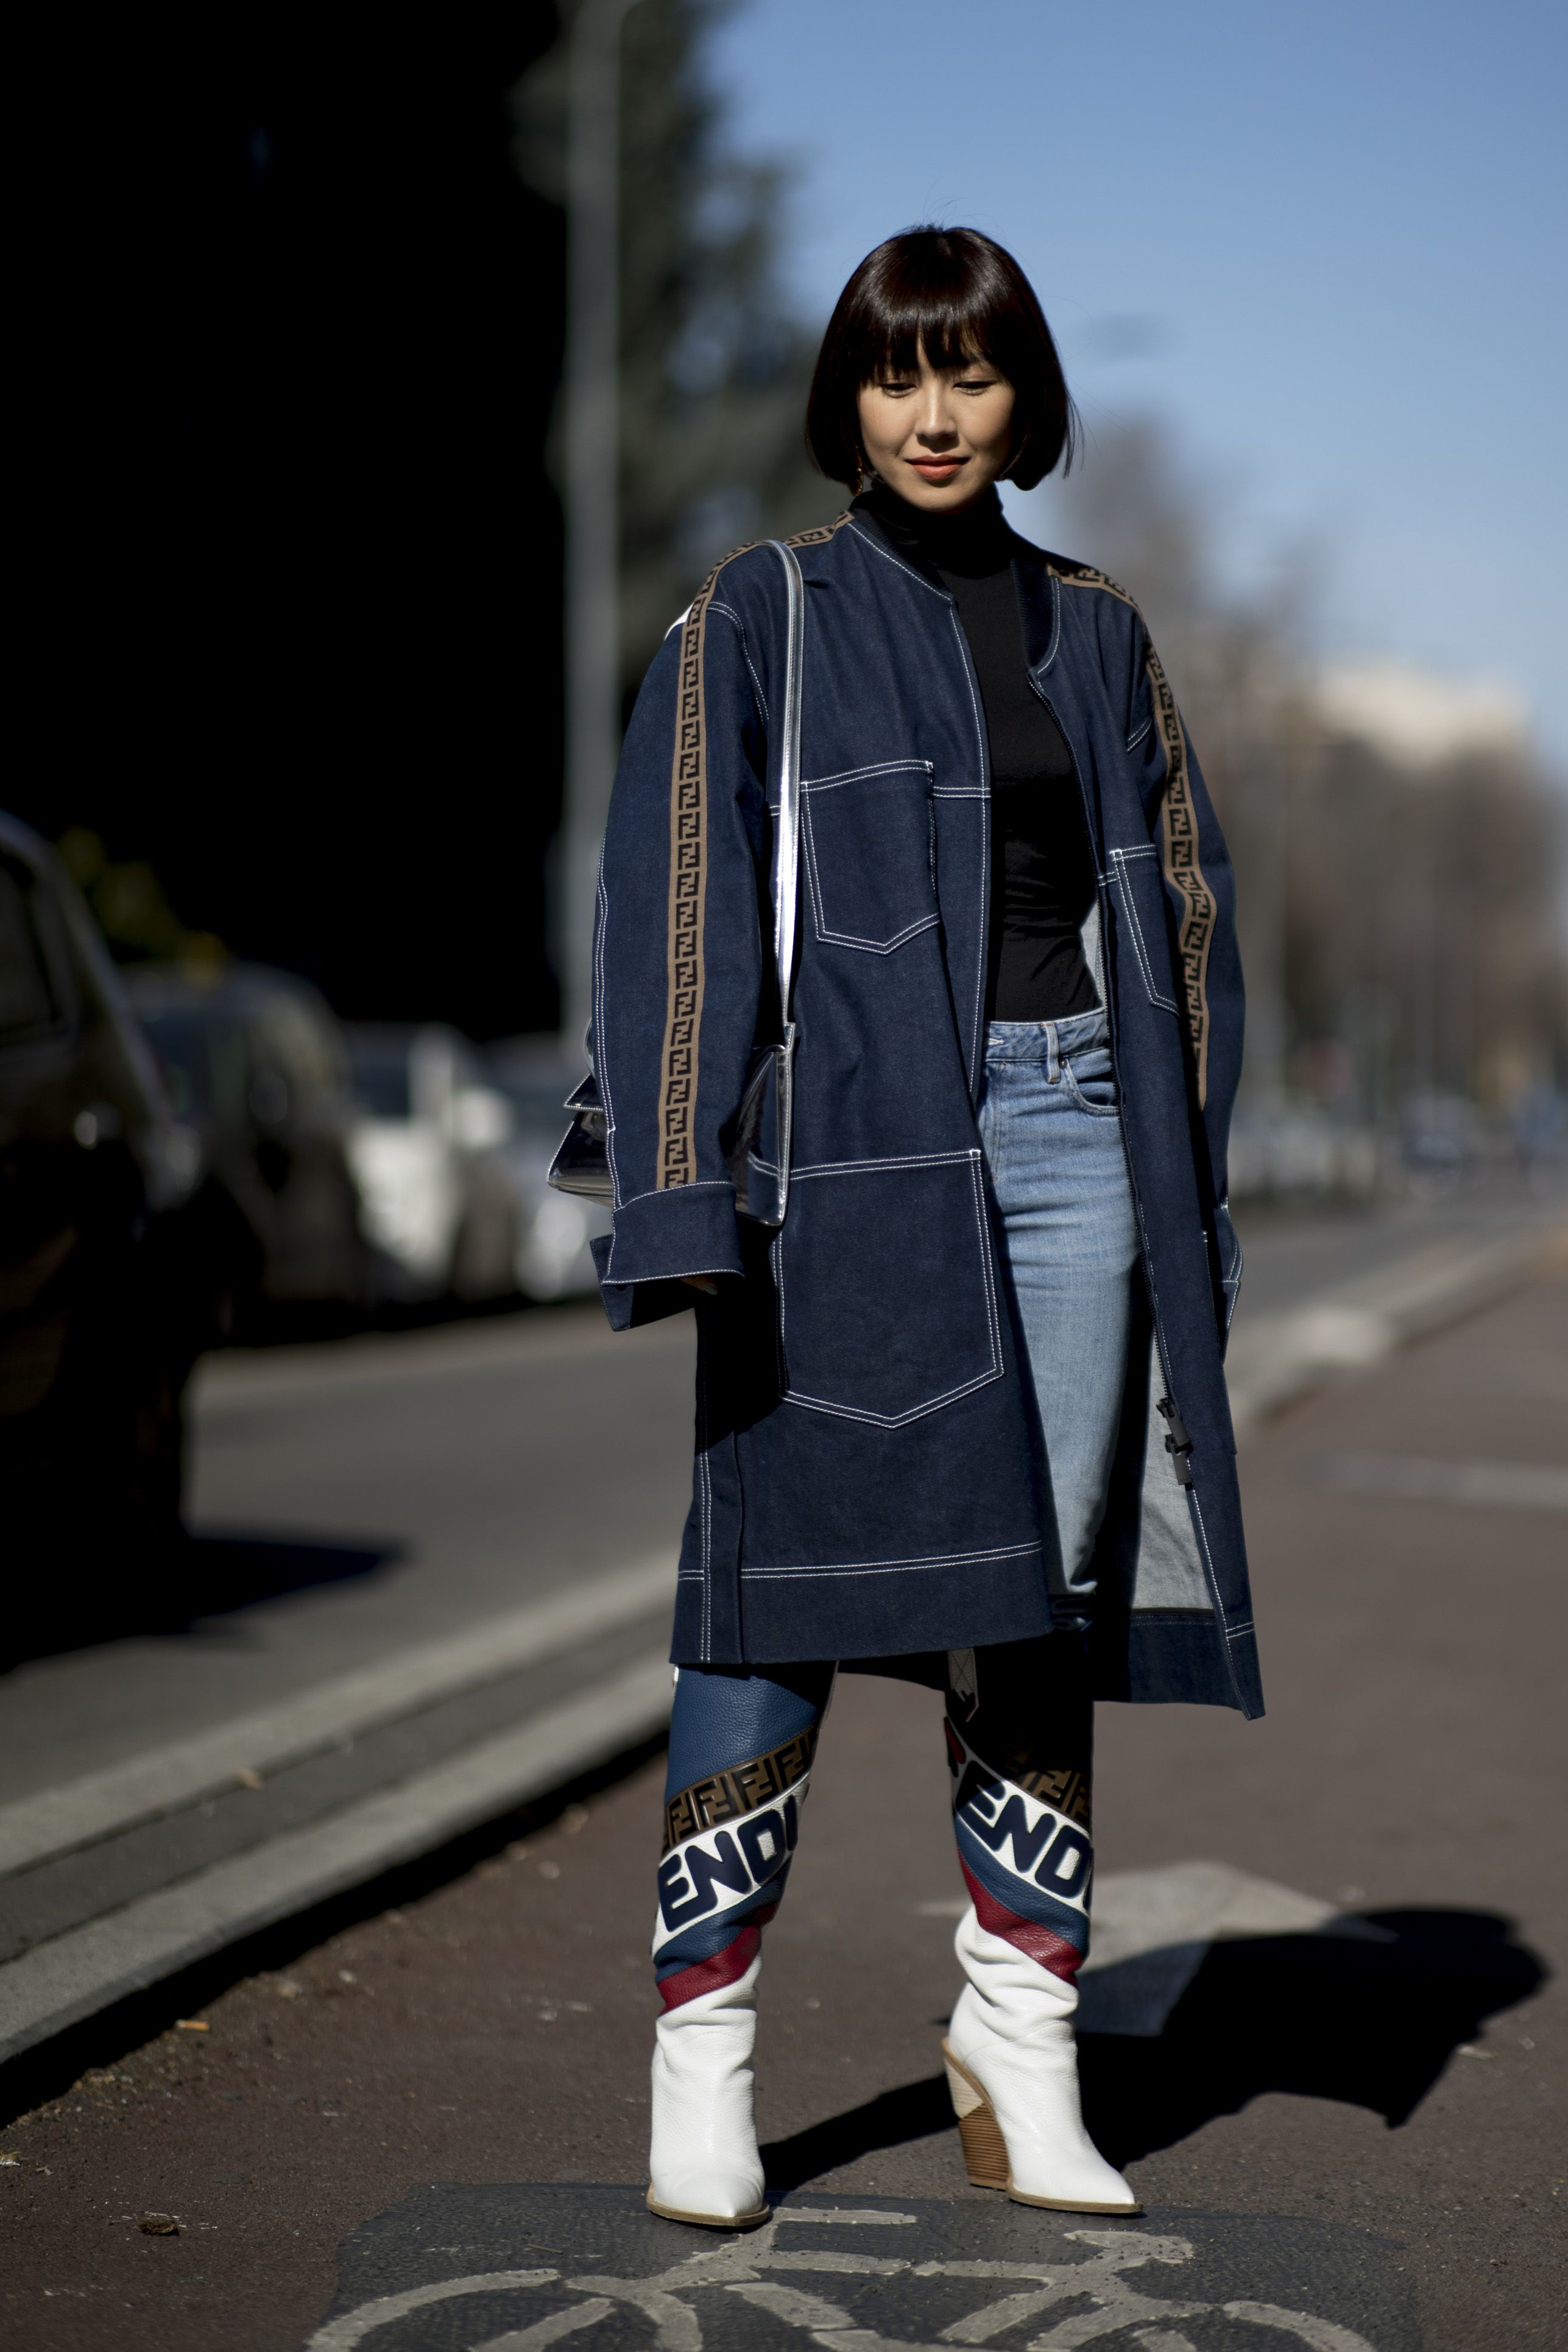 milan fashion week street style aw19